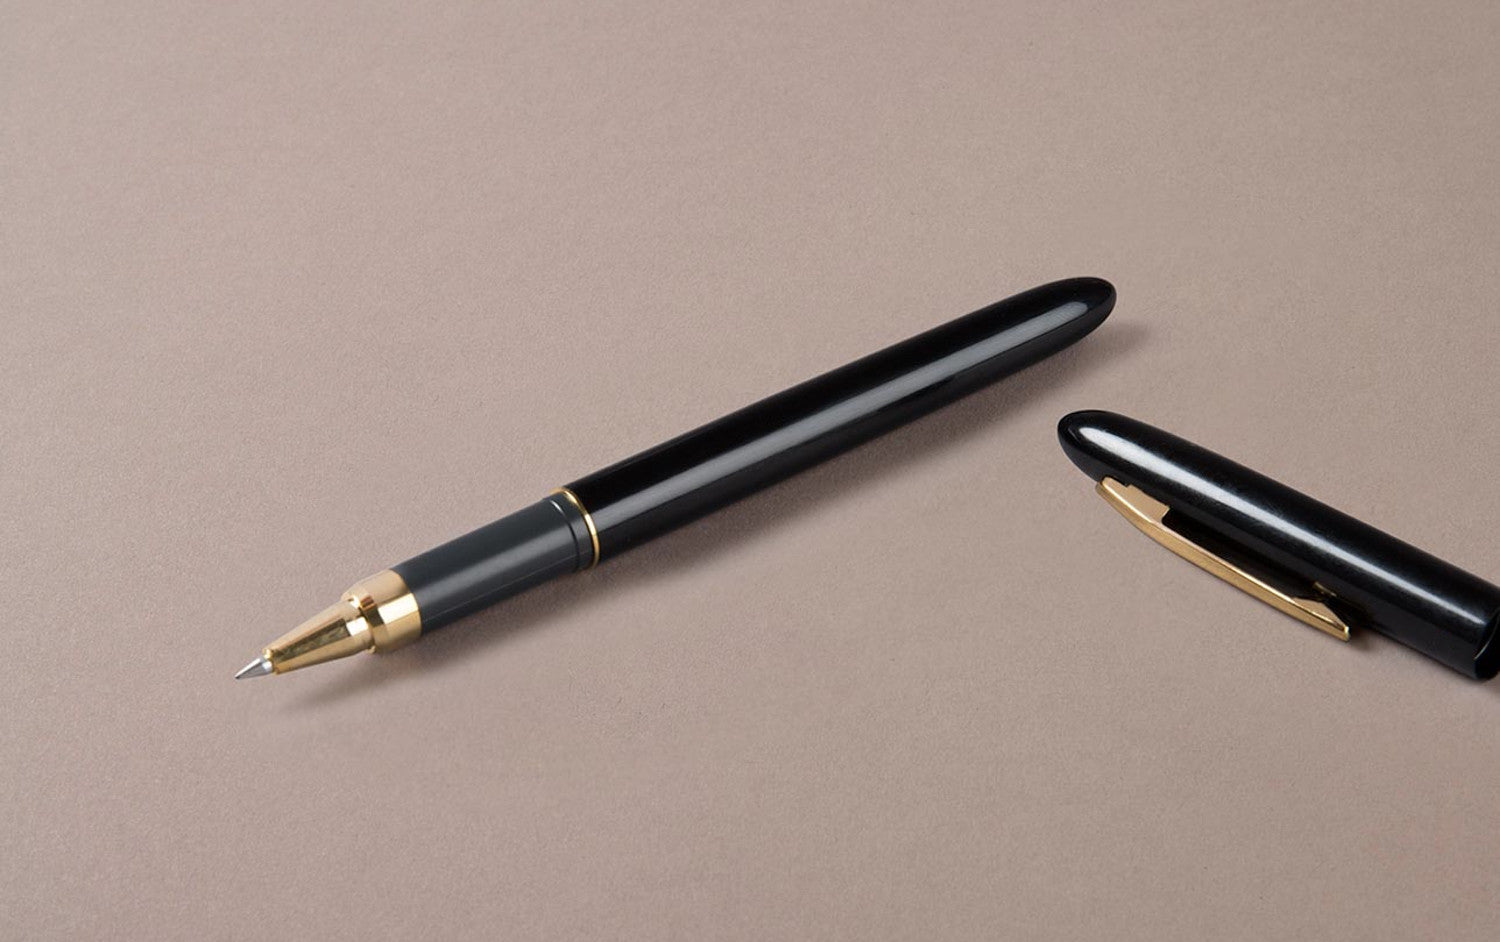 Extra Smooth Black Ceramic Rollerball Pen